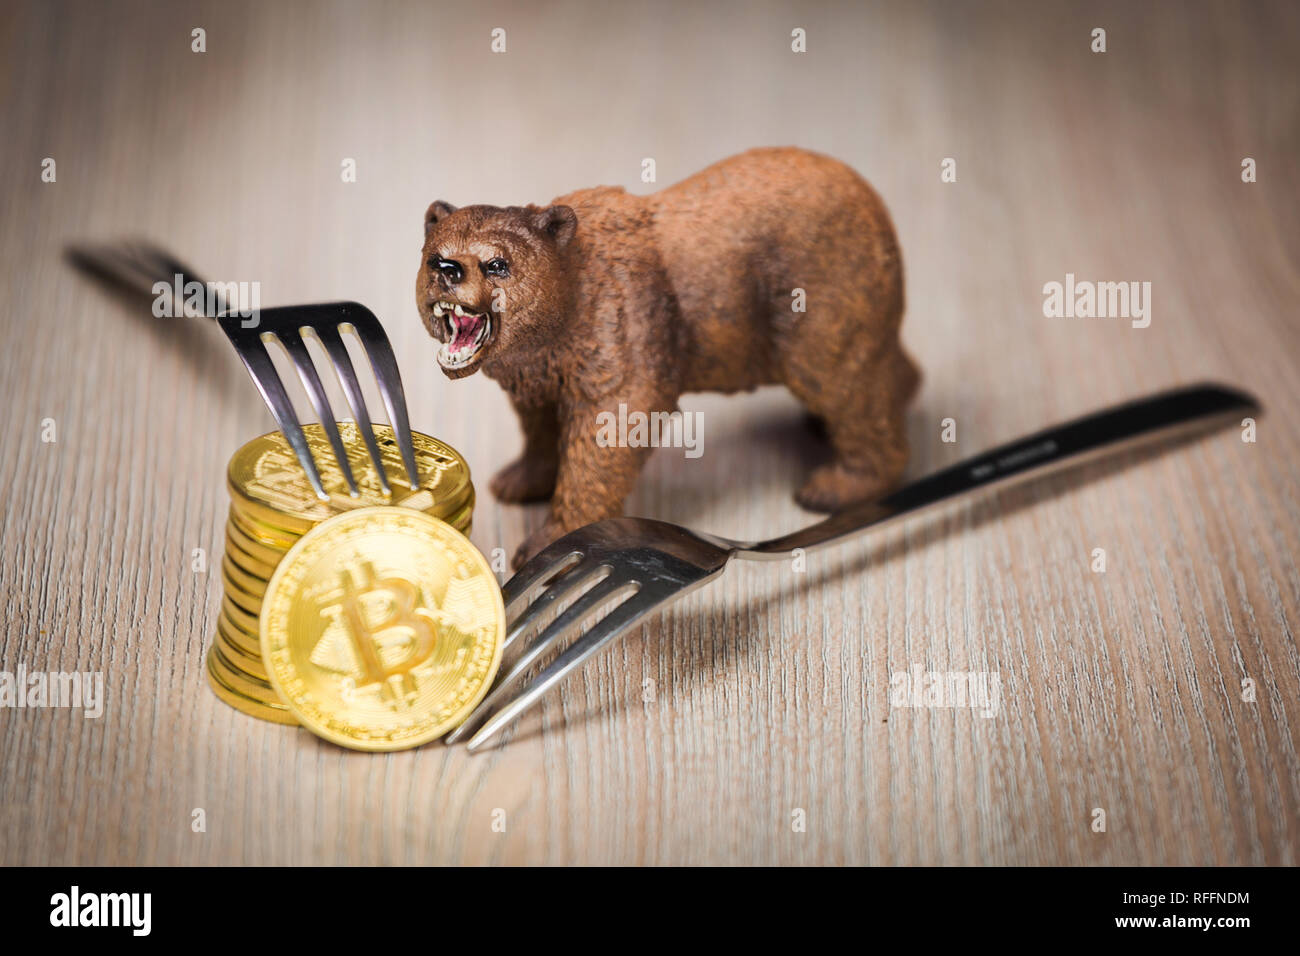 Cryptocurrency bitcoin bear figure on a wooden table. Bearish market trend concept - Stock Image